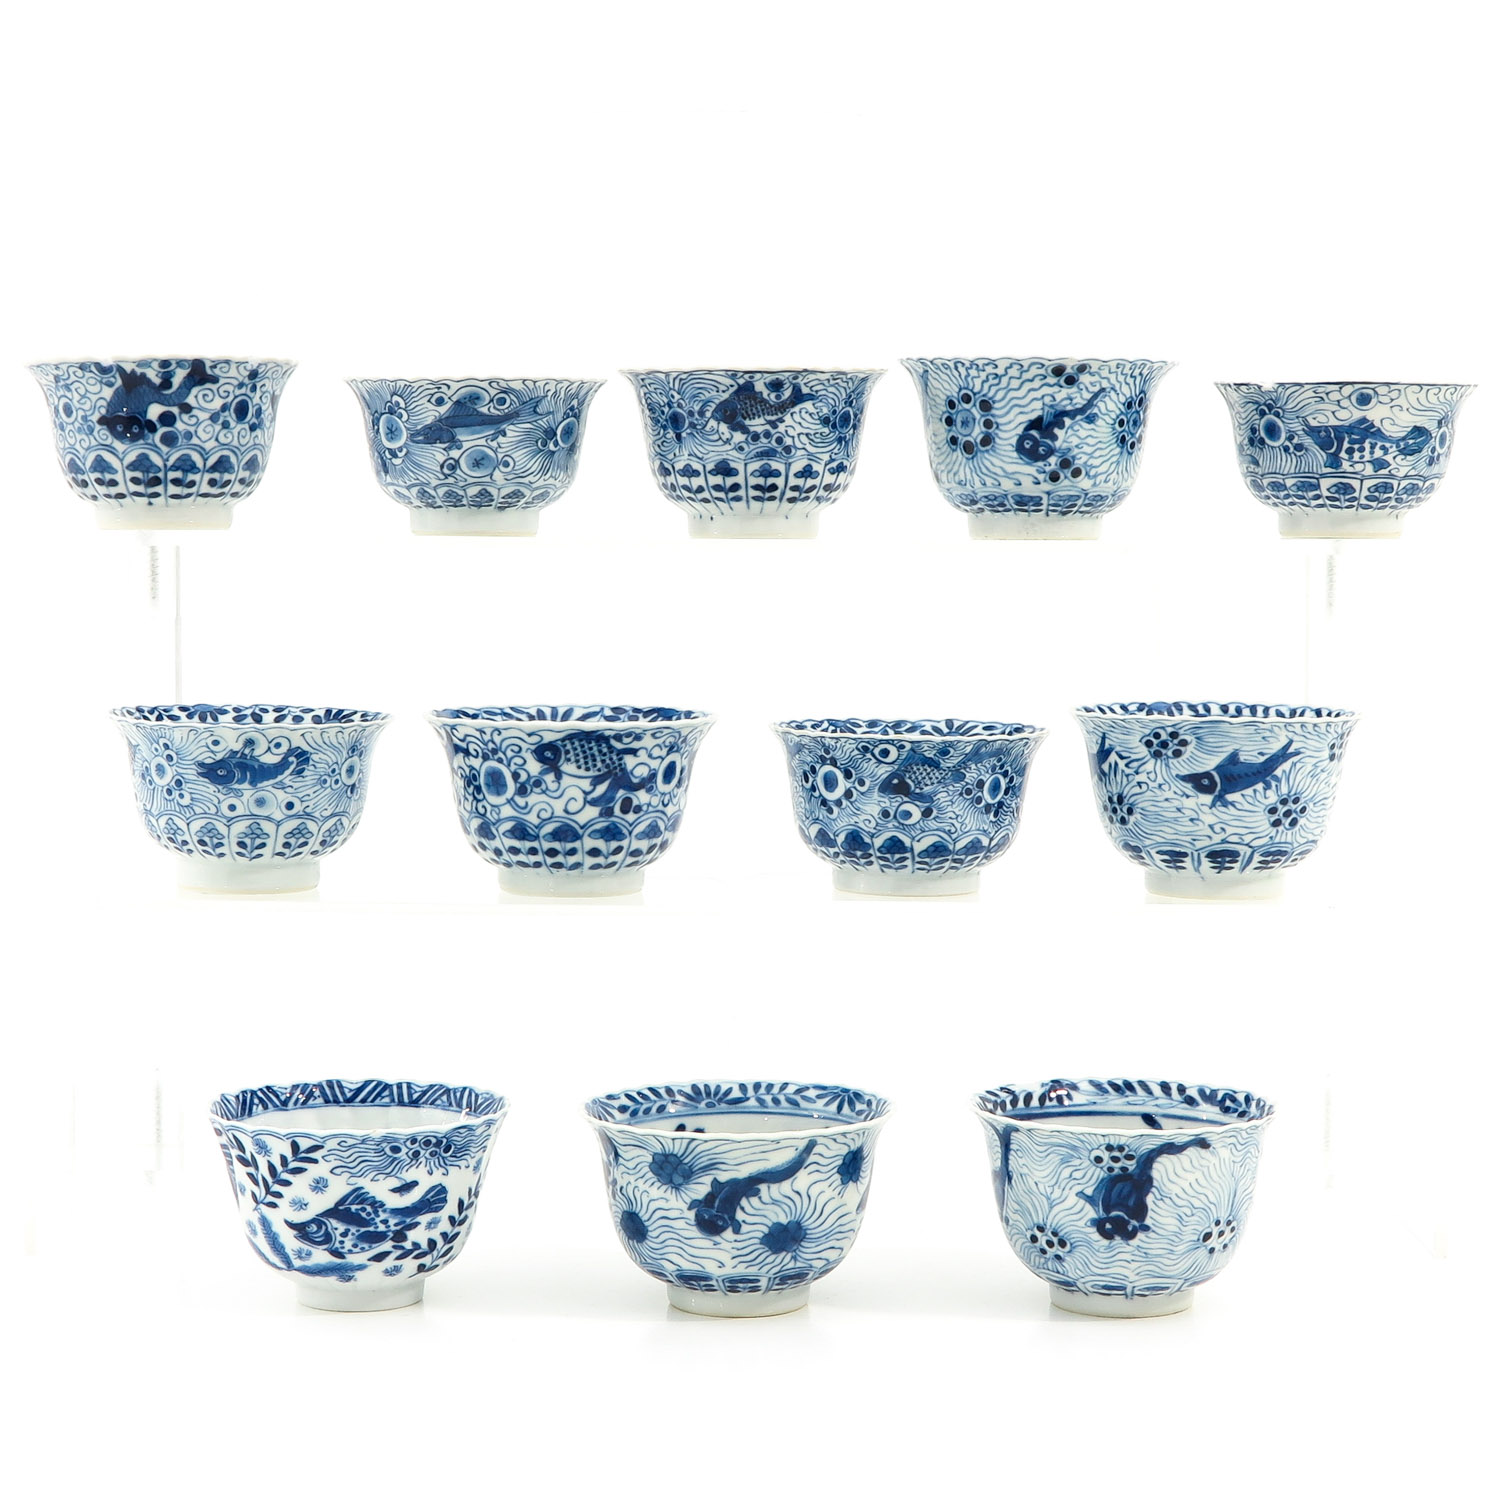 A Series of 12 Cups and Saucers - Image 3 of 10